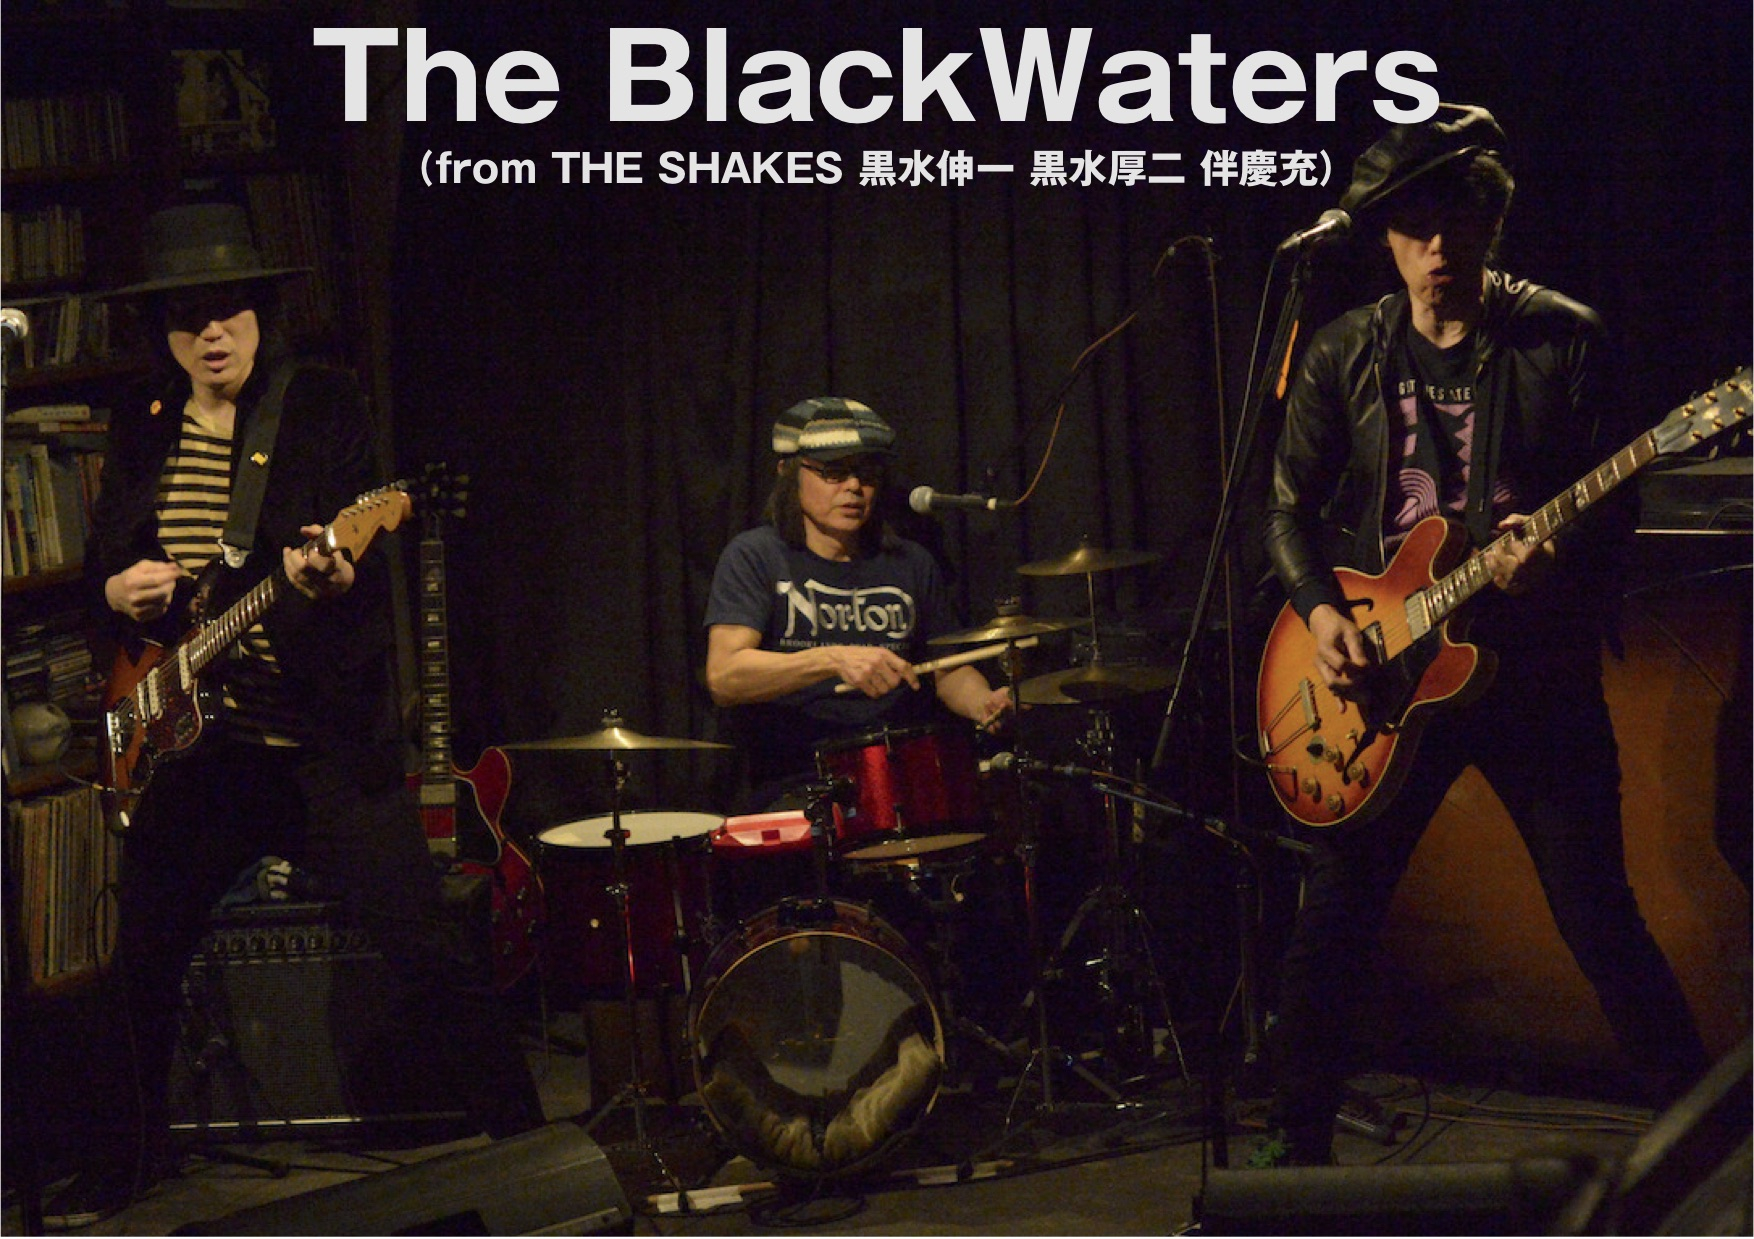 2020/11/14 [The BlackWaters ワンマンライブ 「A Place In  My Heart」]